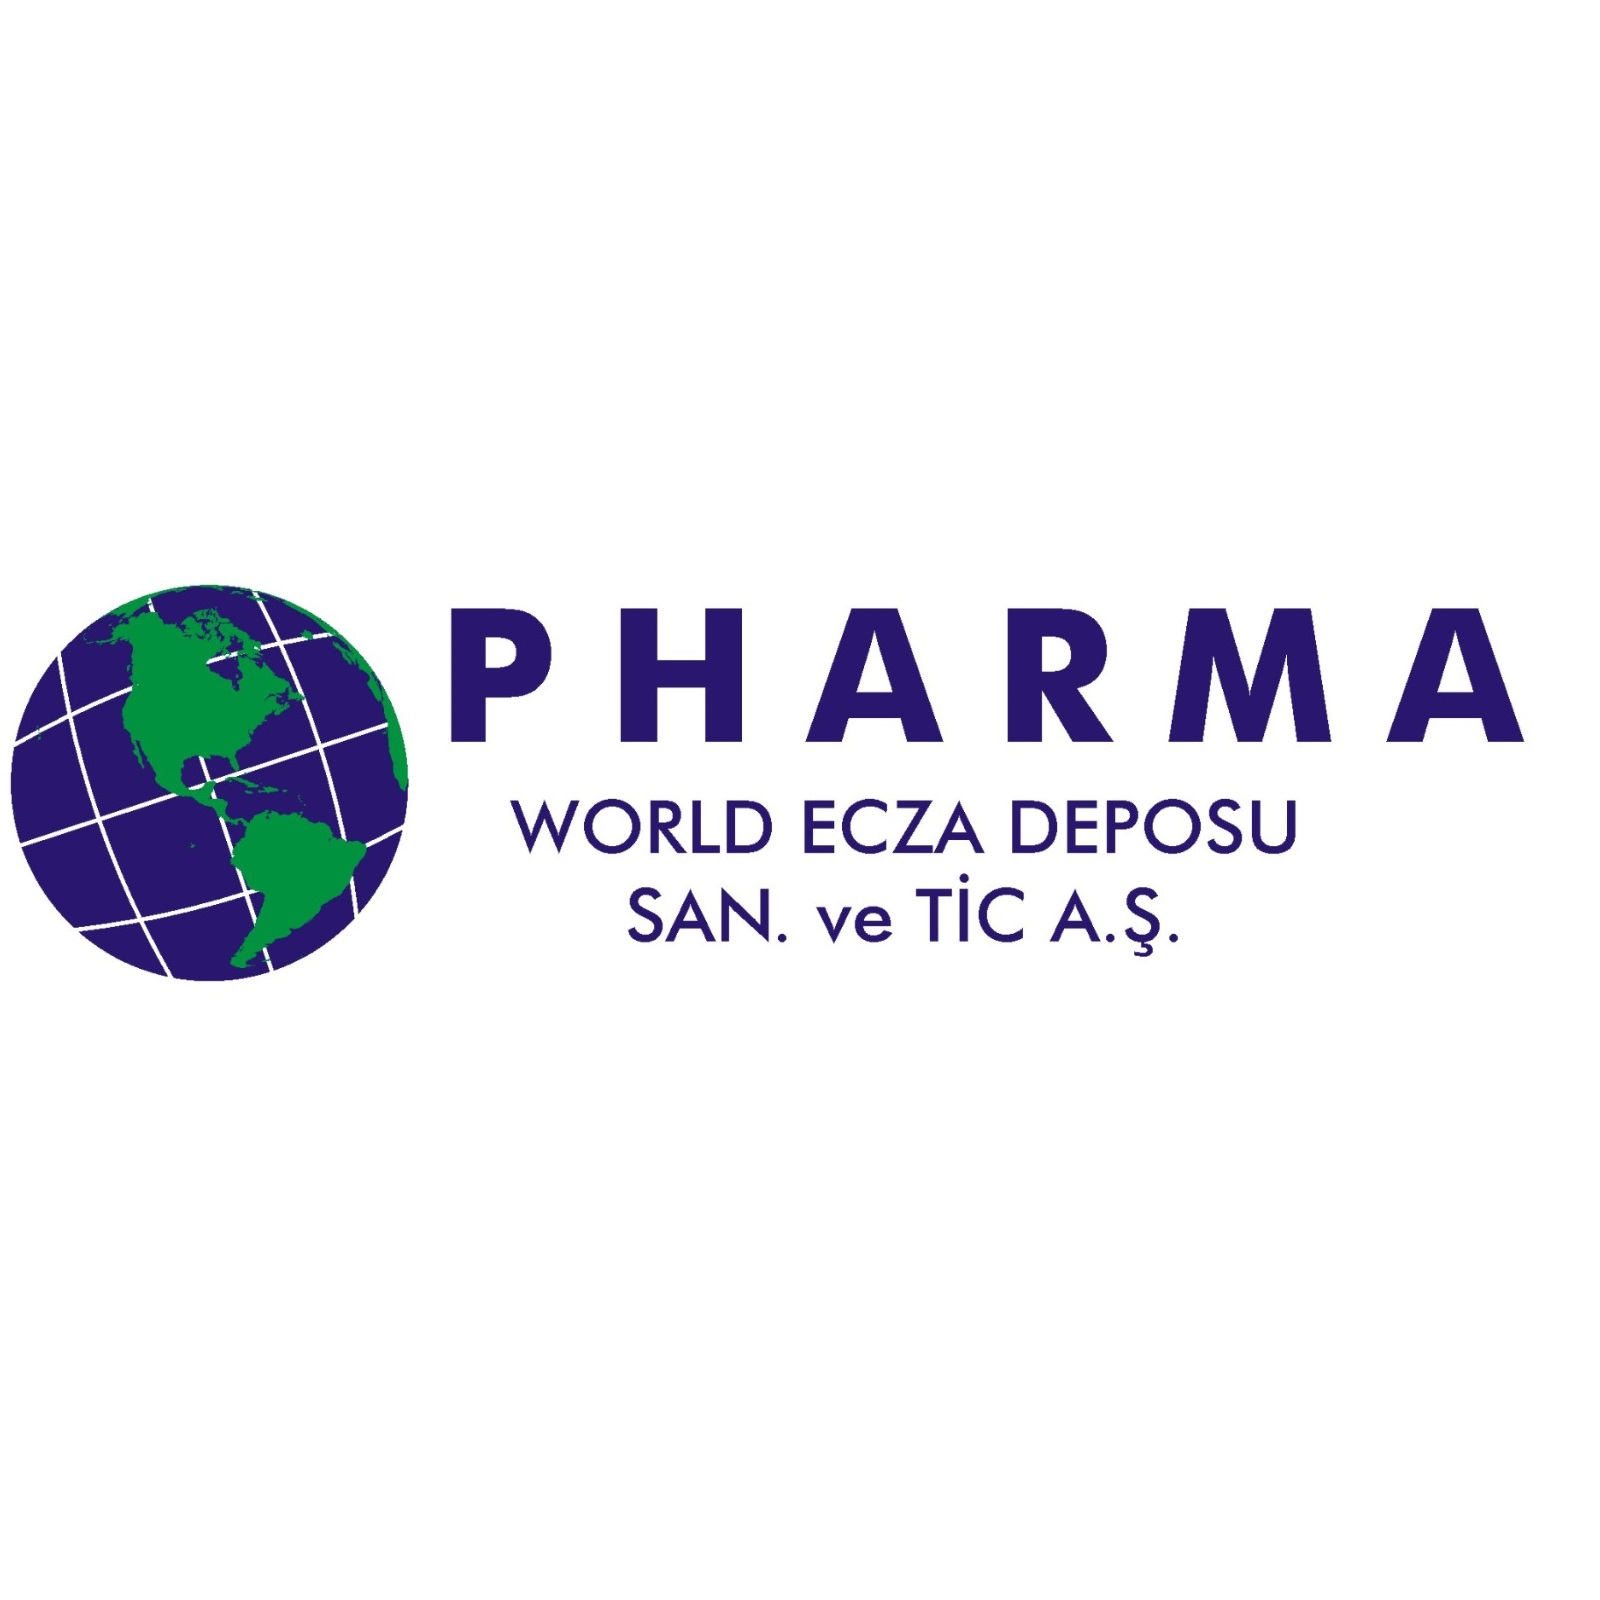 PHARMA WORLD ECZA DEPOSU A.S.